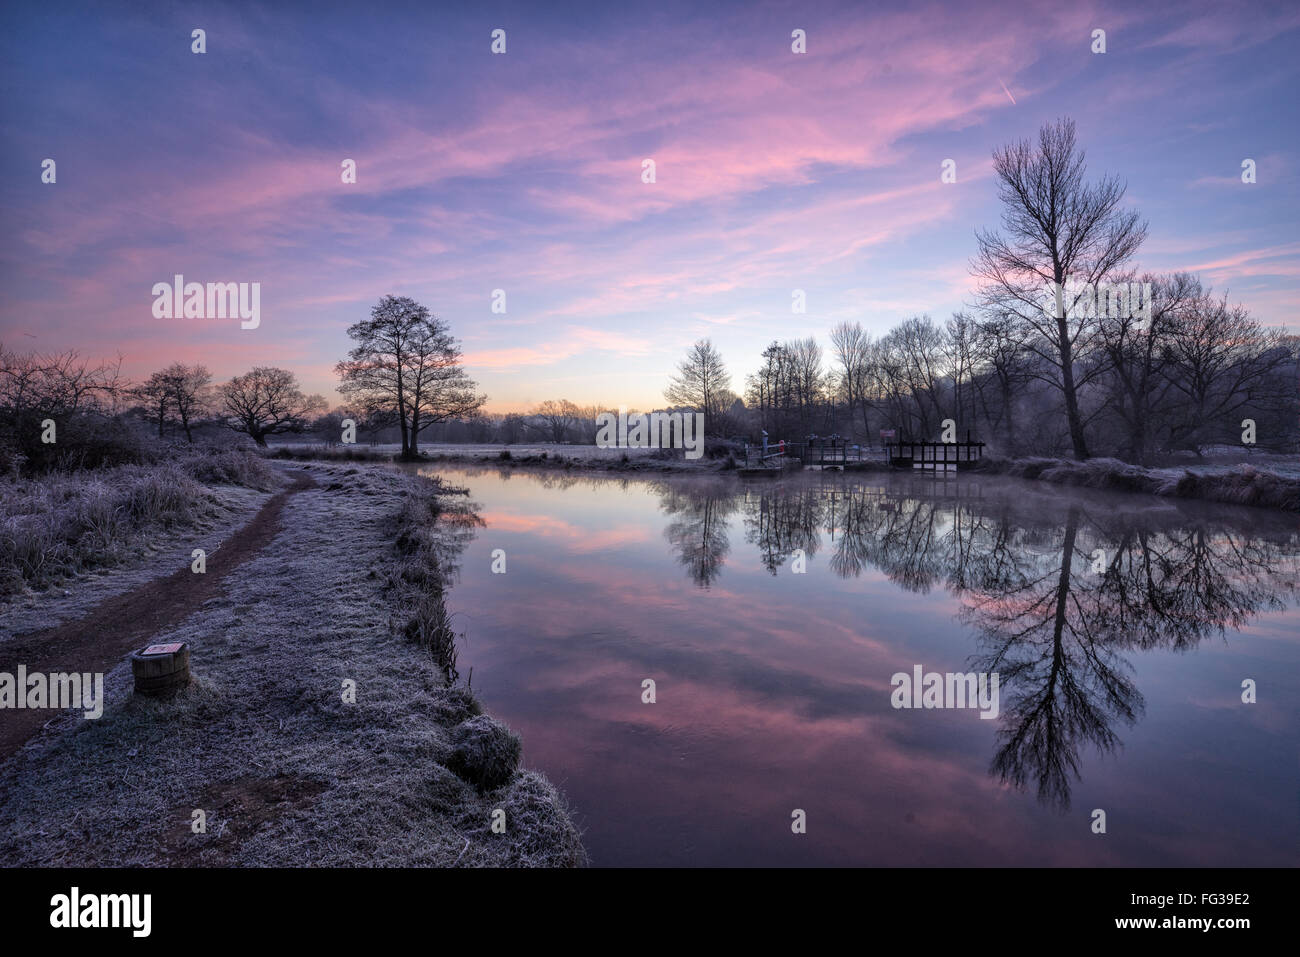 Sunrise over the river Wey navigation with frost on the ground and trees reflected in the river - Stock Image